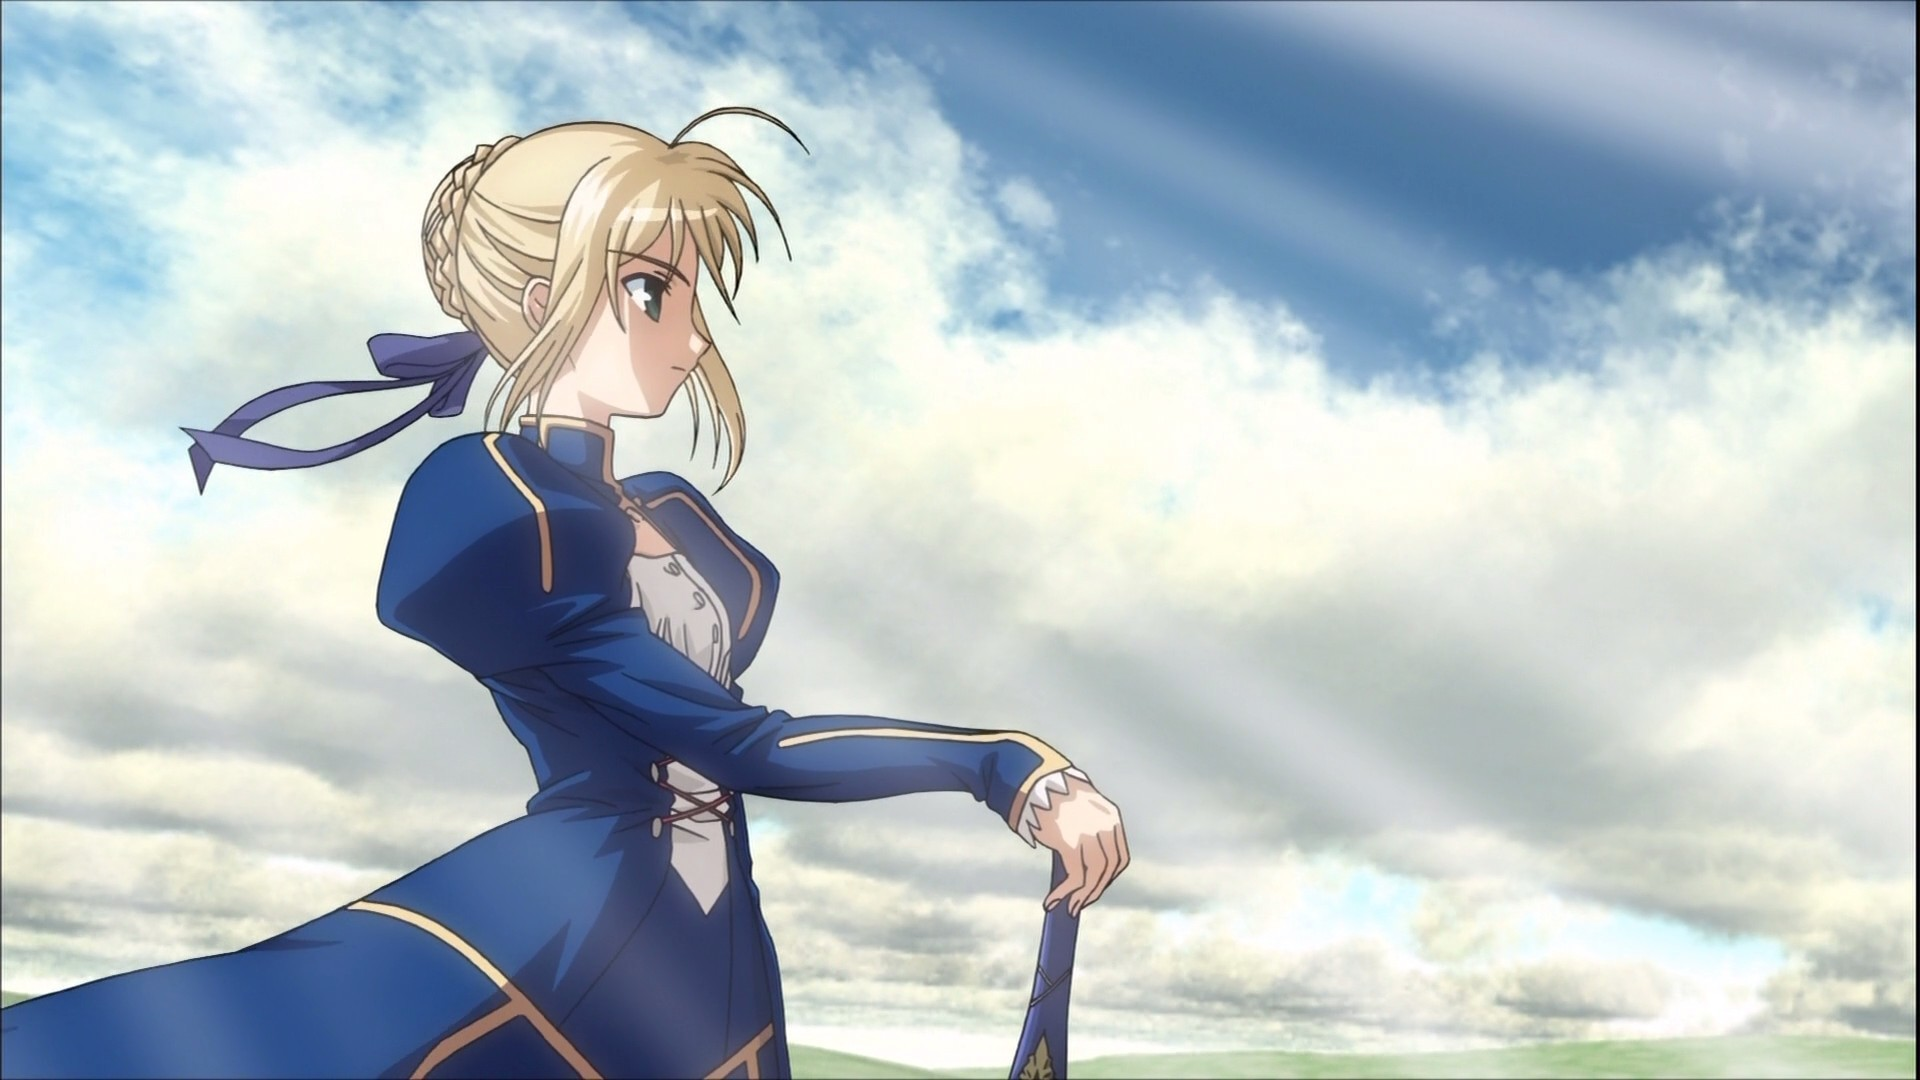 Fate Stay Night Wallpaper on Fate Stay Night Hd Wallpaper   Anime   Manga   368858